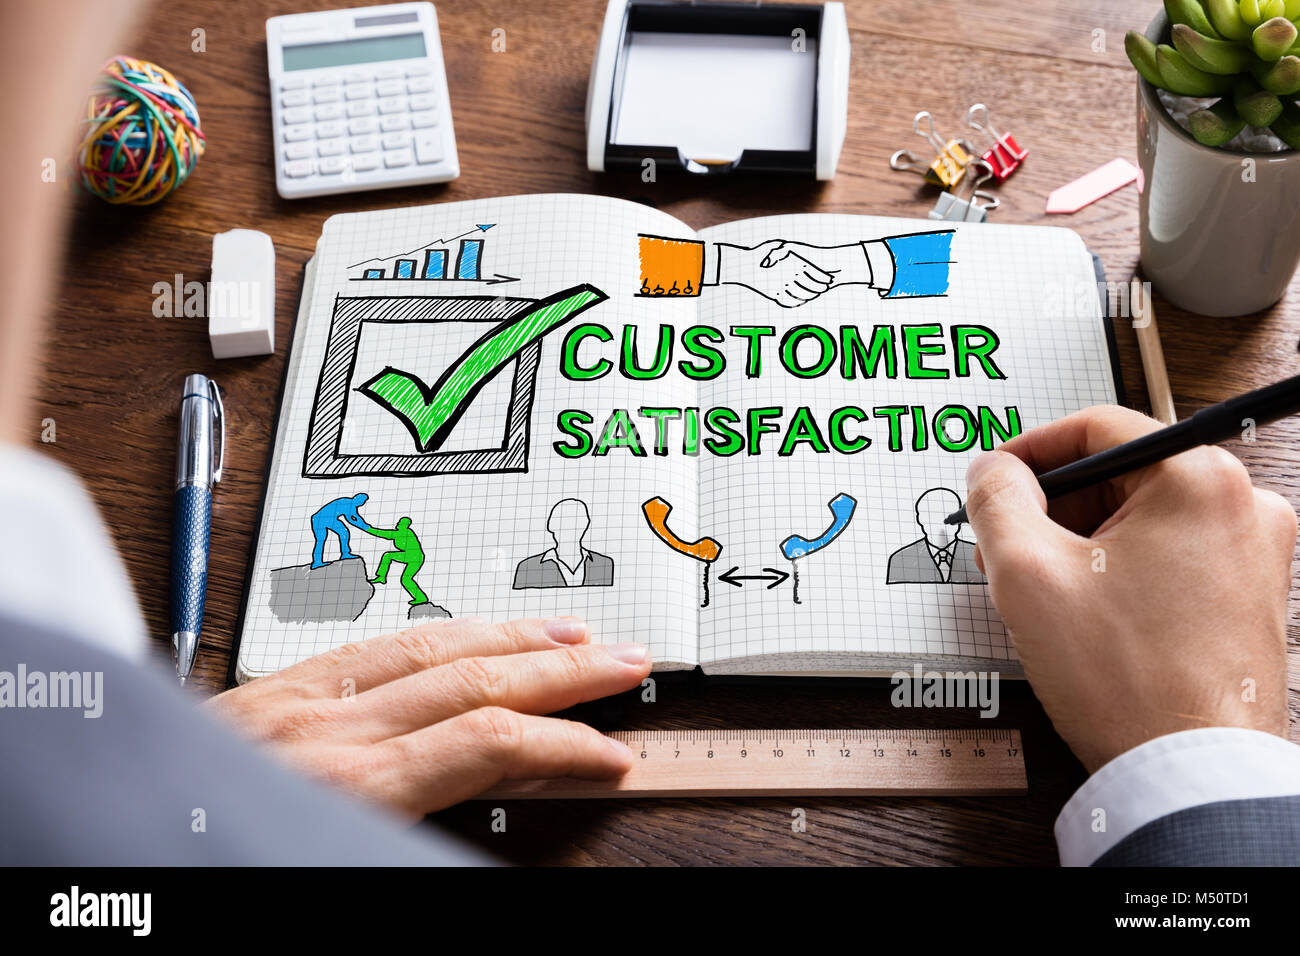 Man Drawing Customer Satisfaction Survey Concept In Notepad - Stock Image